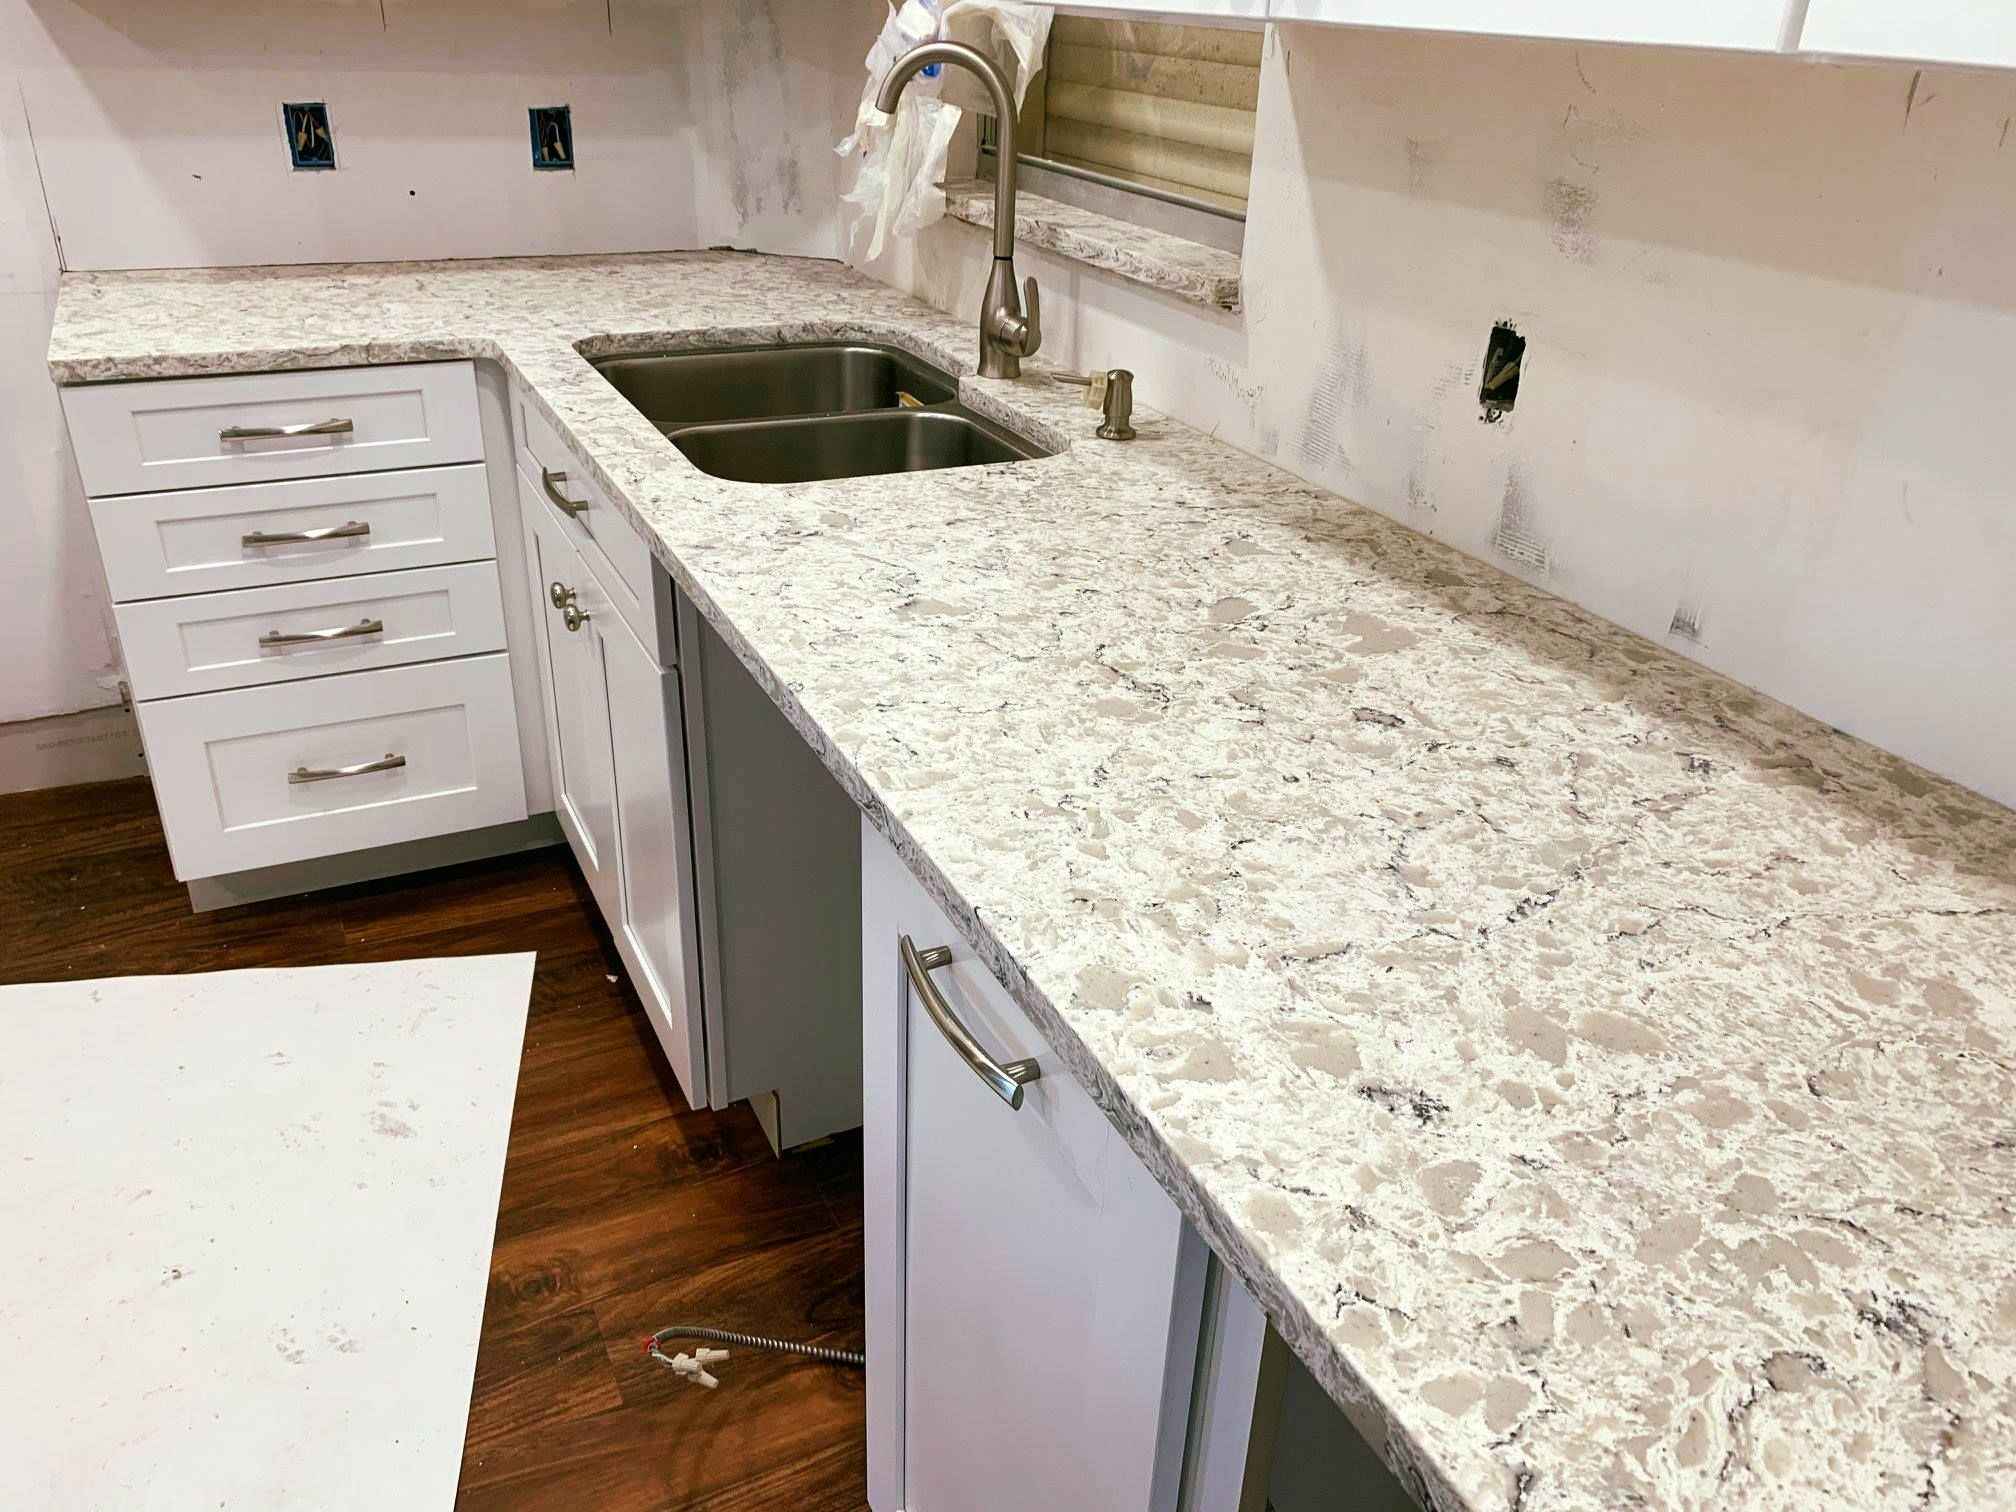 Magnificent Kitchen Island Countertop Made By Using Iconic Selinas Phoenix Quartz Designed Polis Countertops Kitchen Island Countertop Kitchen Countertops